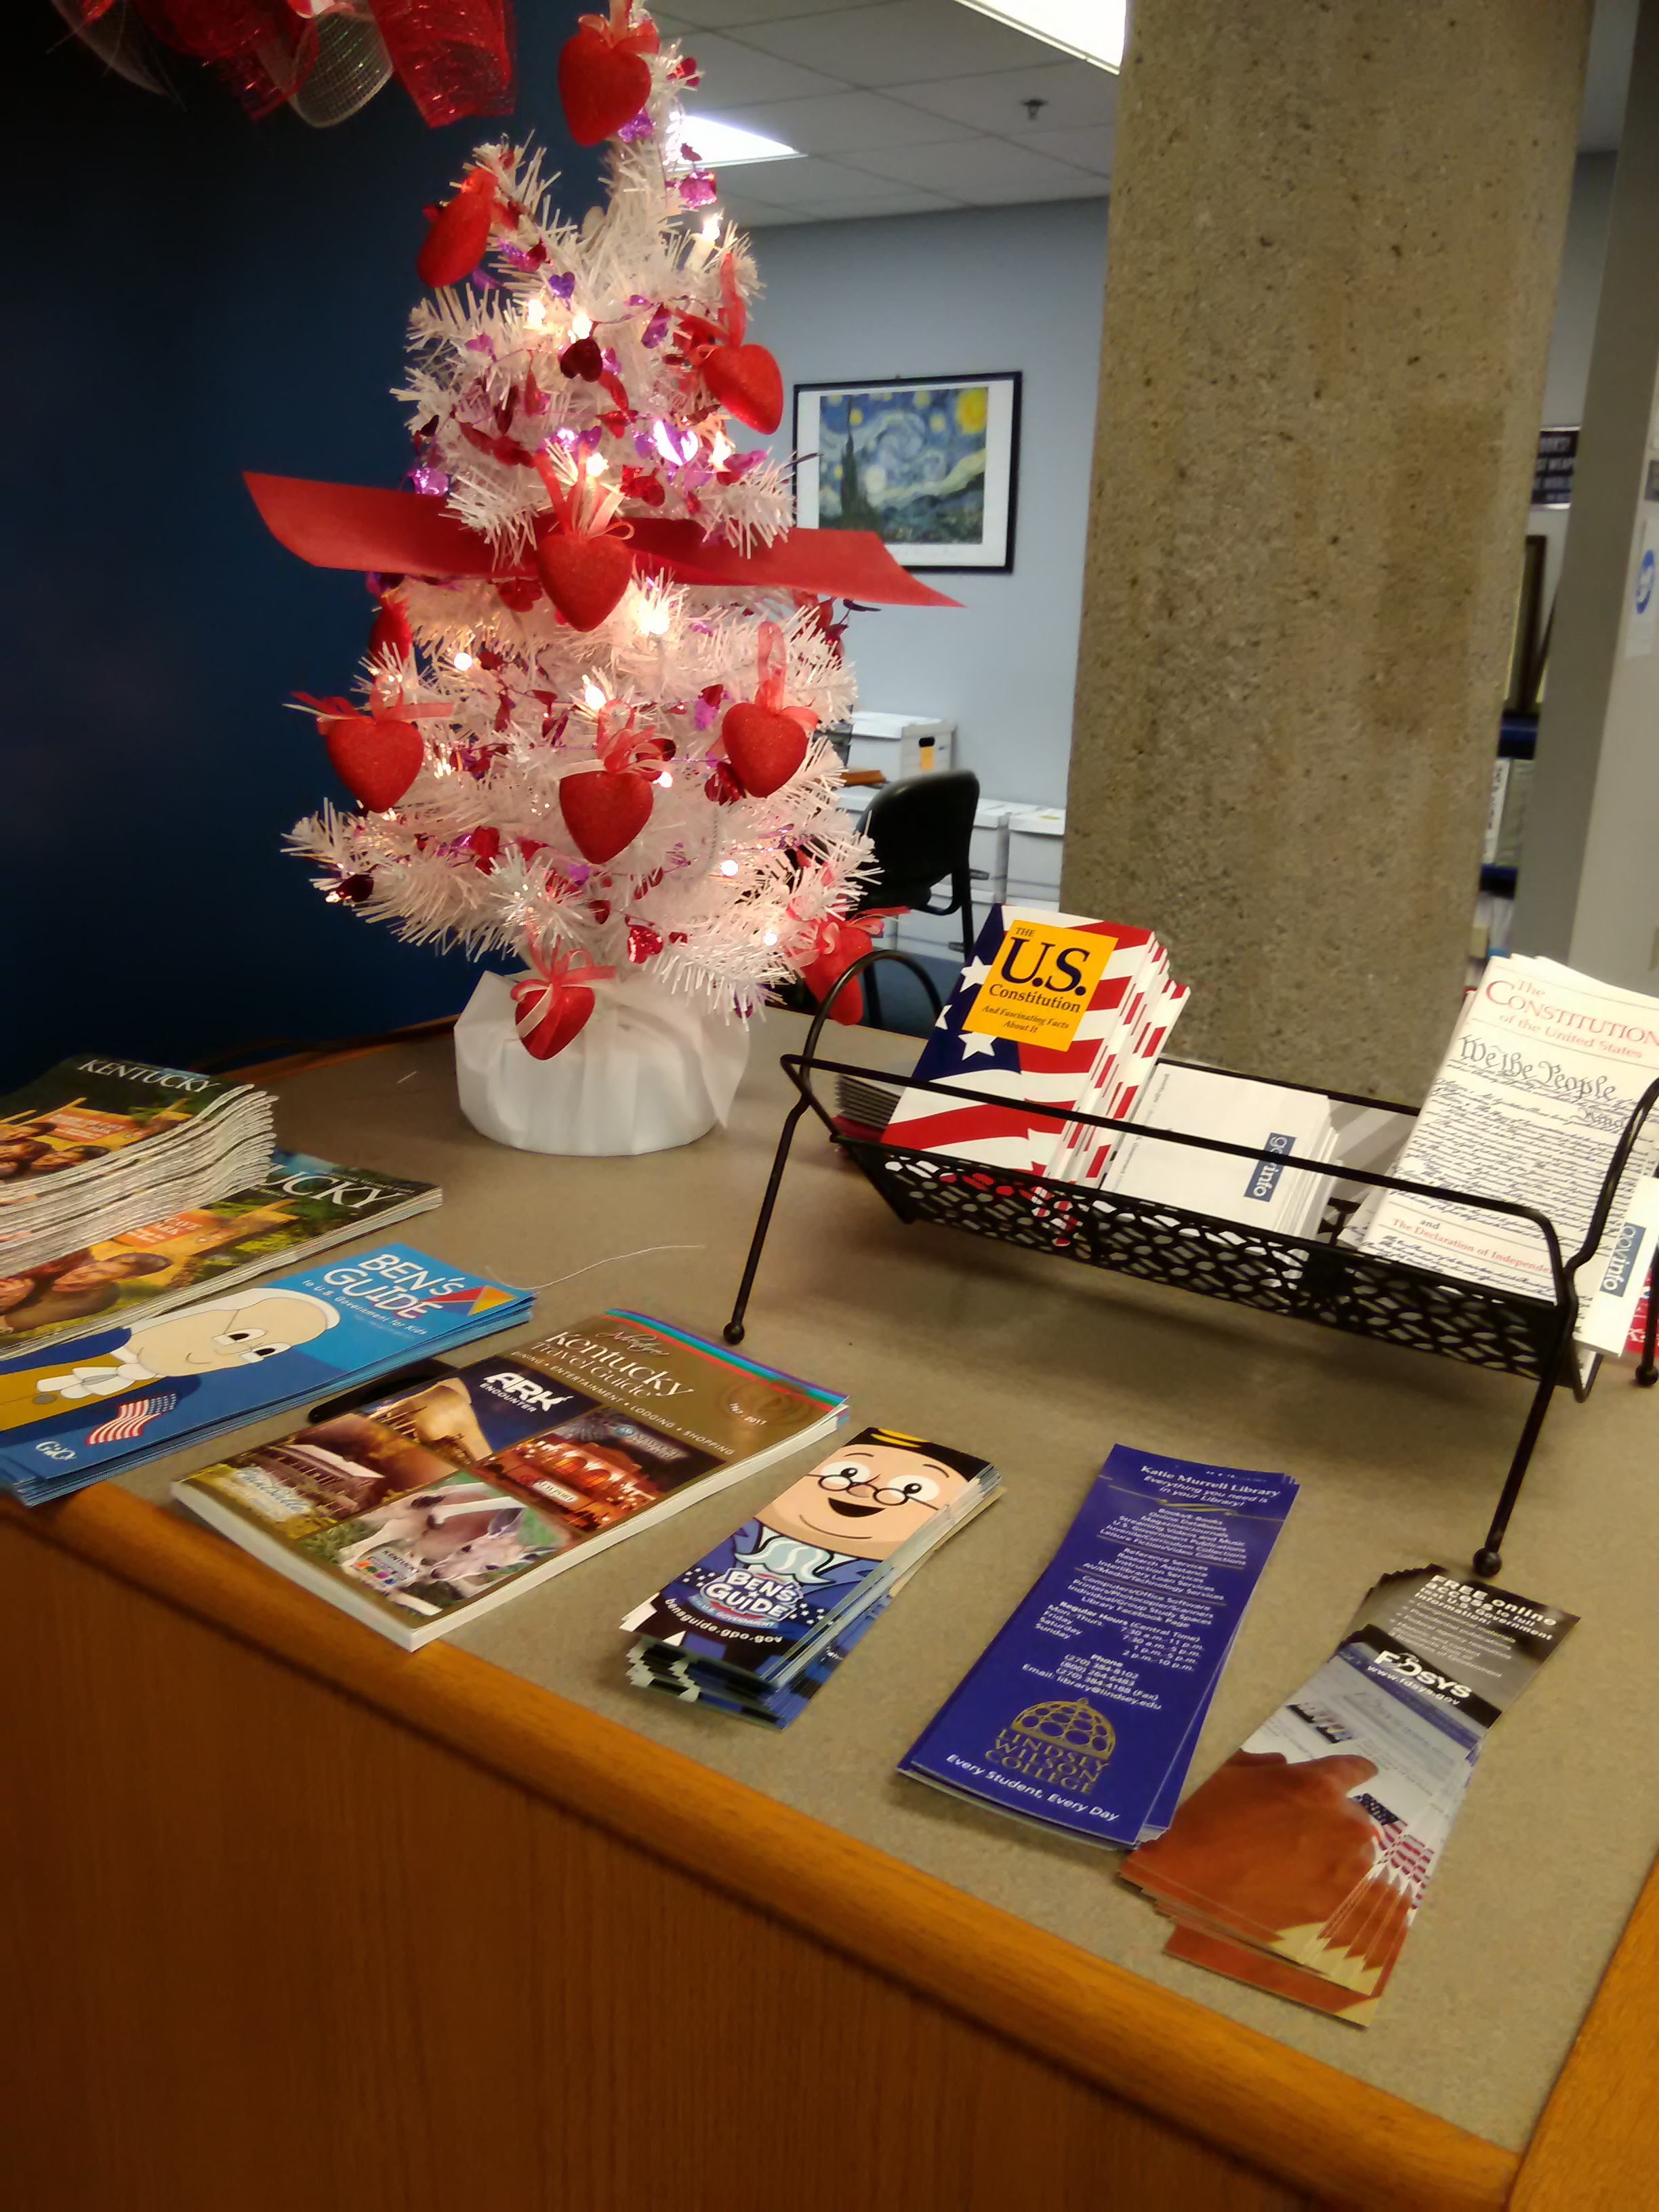 Valentine's tree and Government Documents display with pamphlets